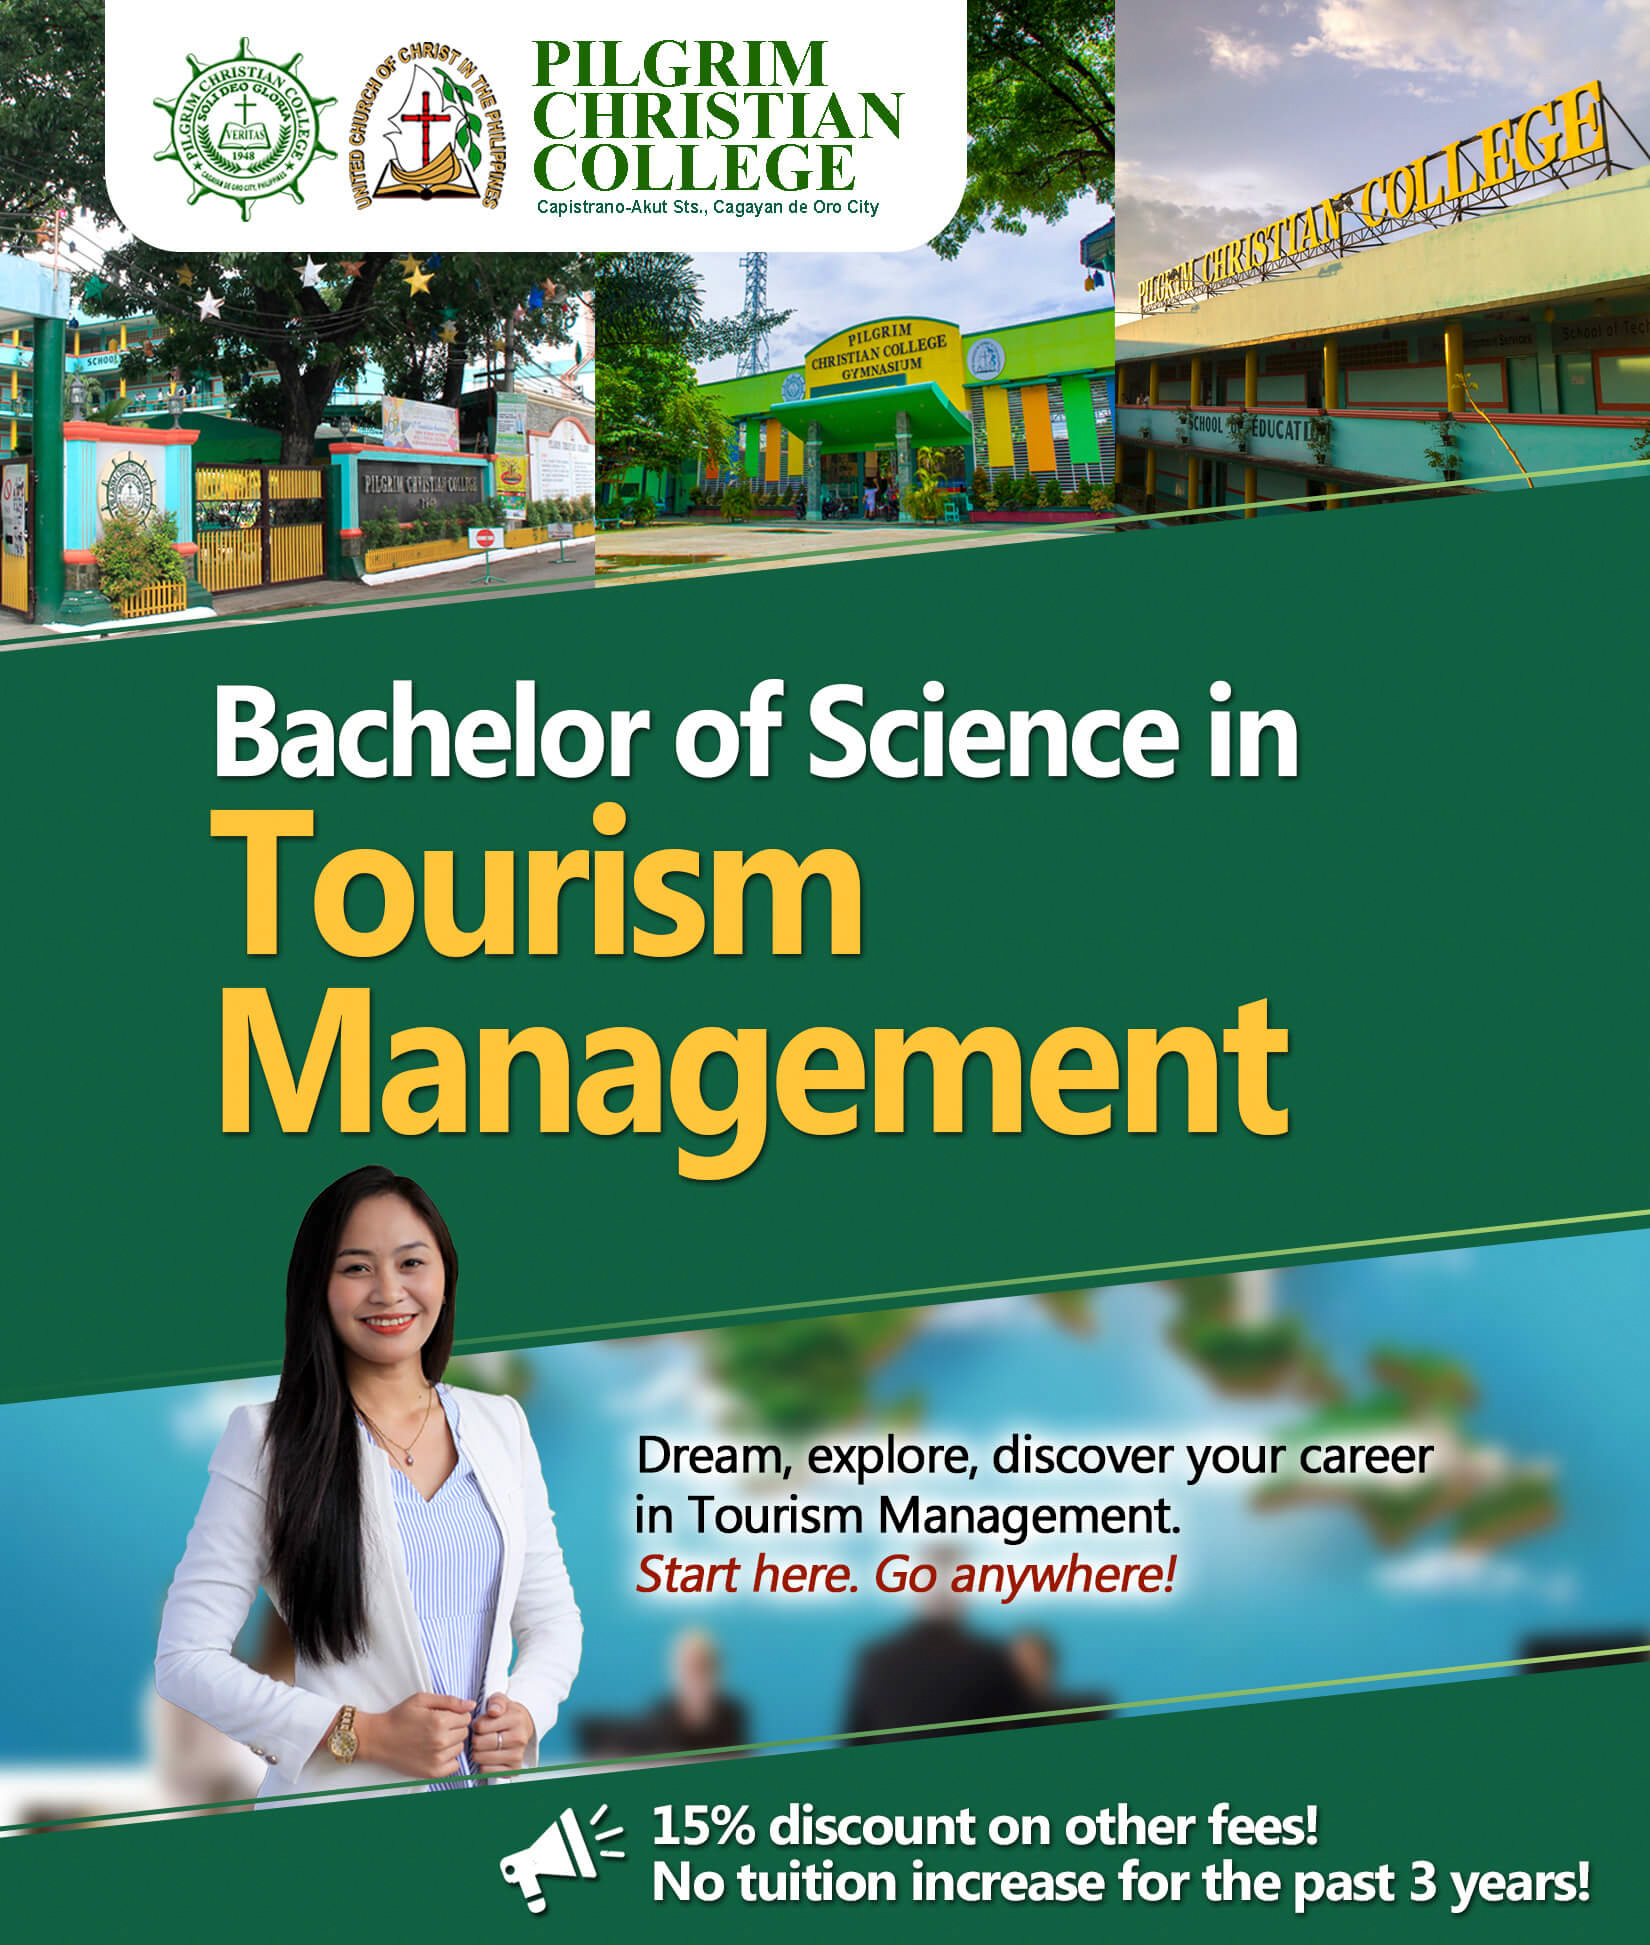 Bachelor-of-Science-in-Tourism-Management